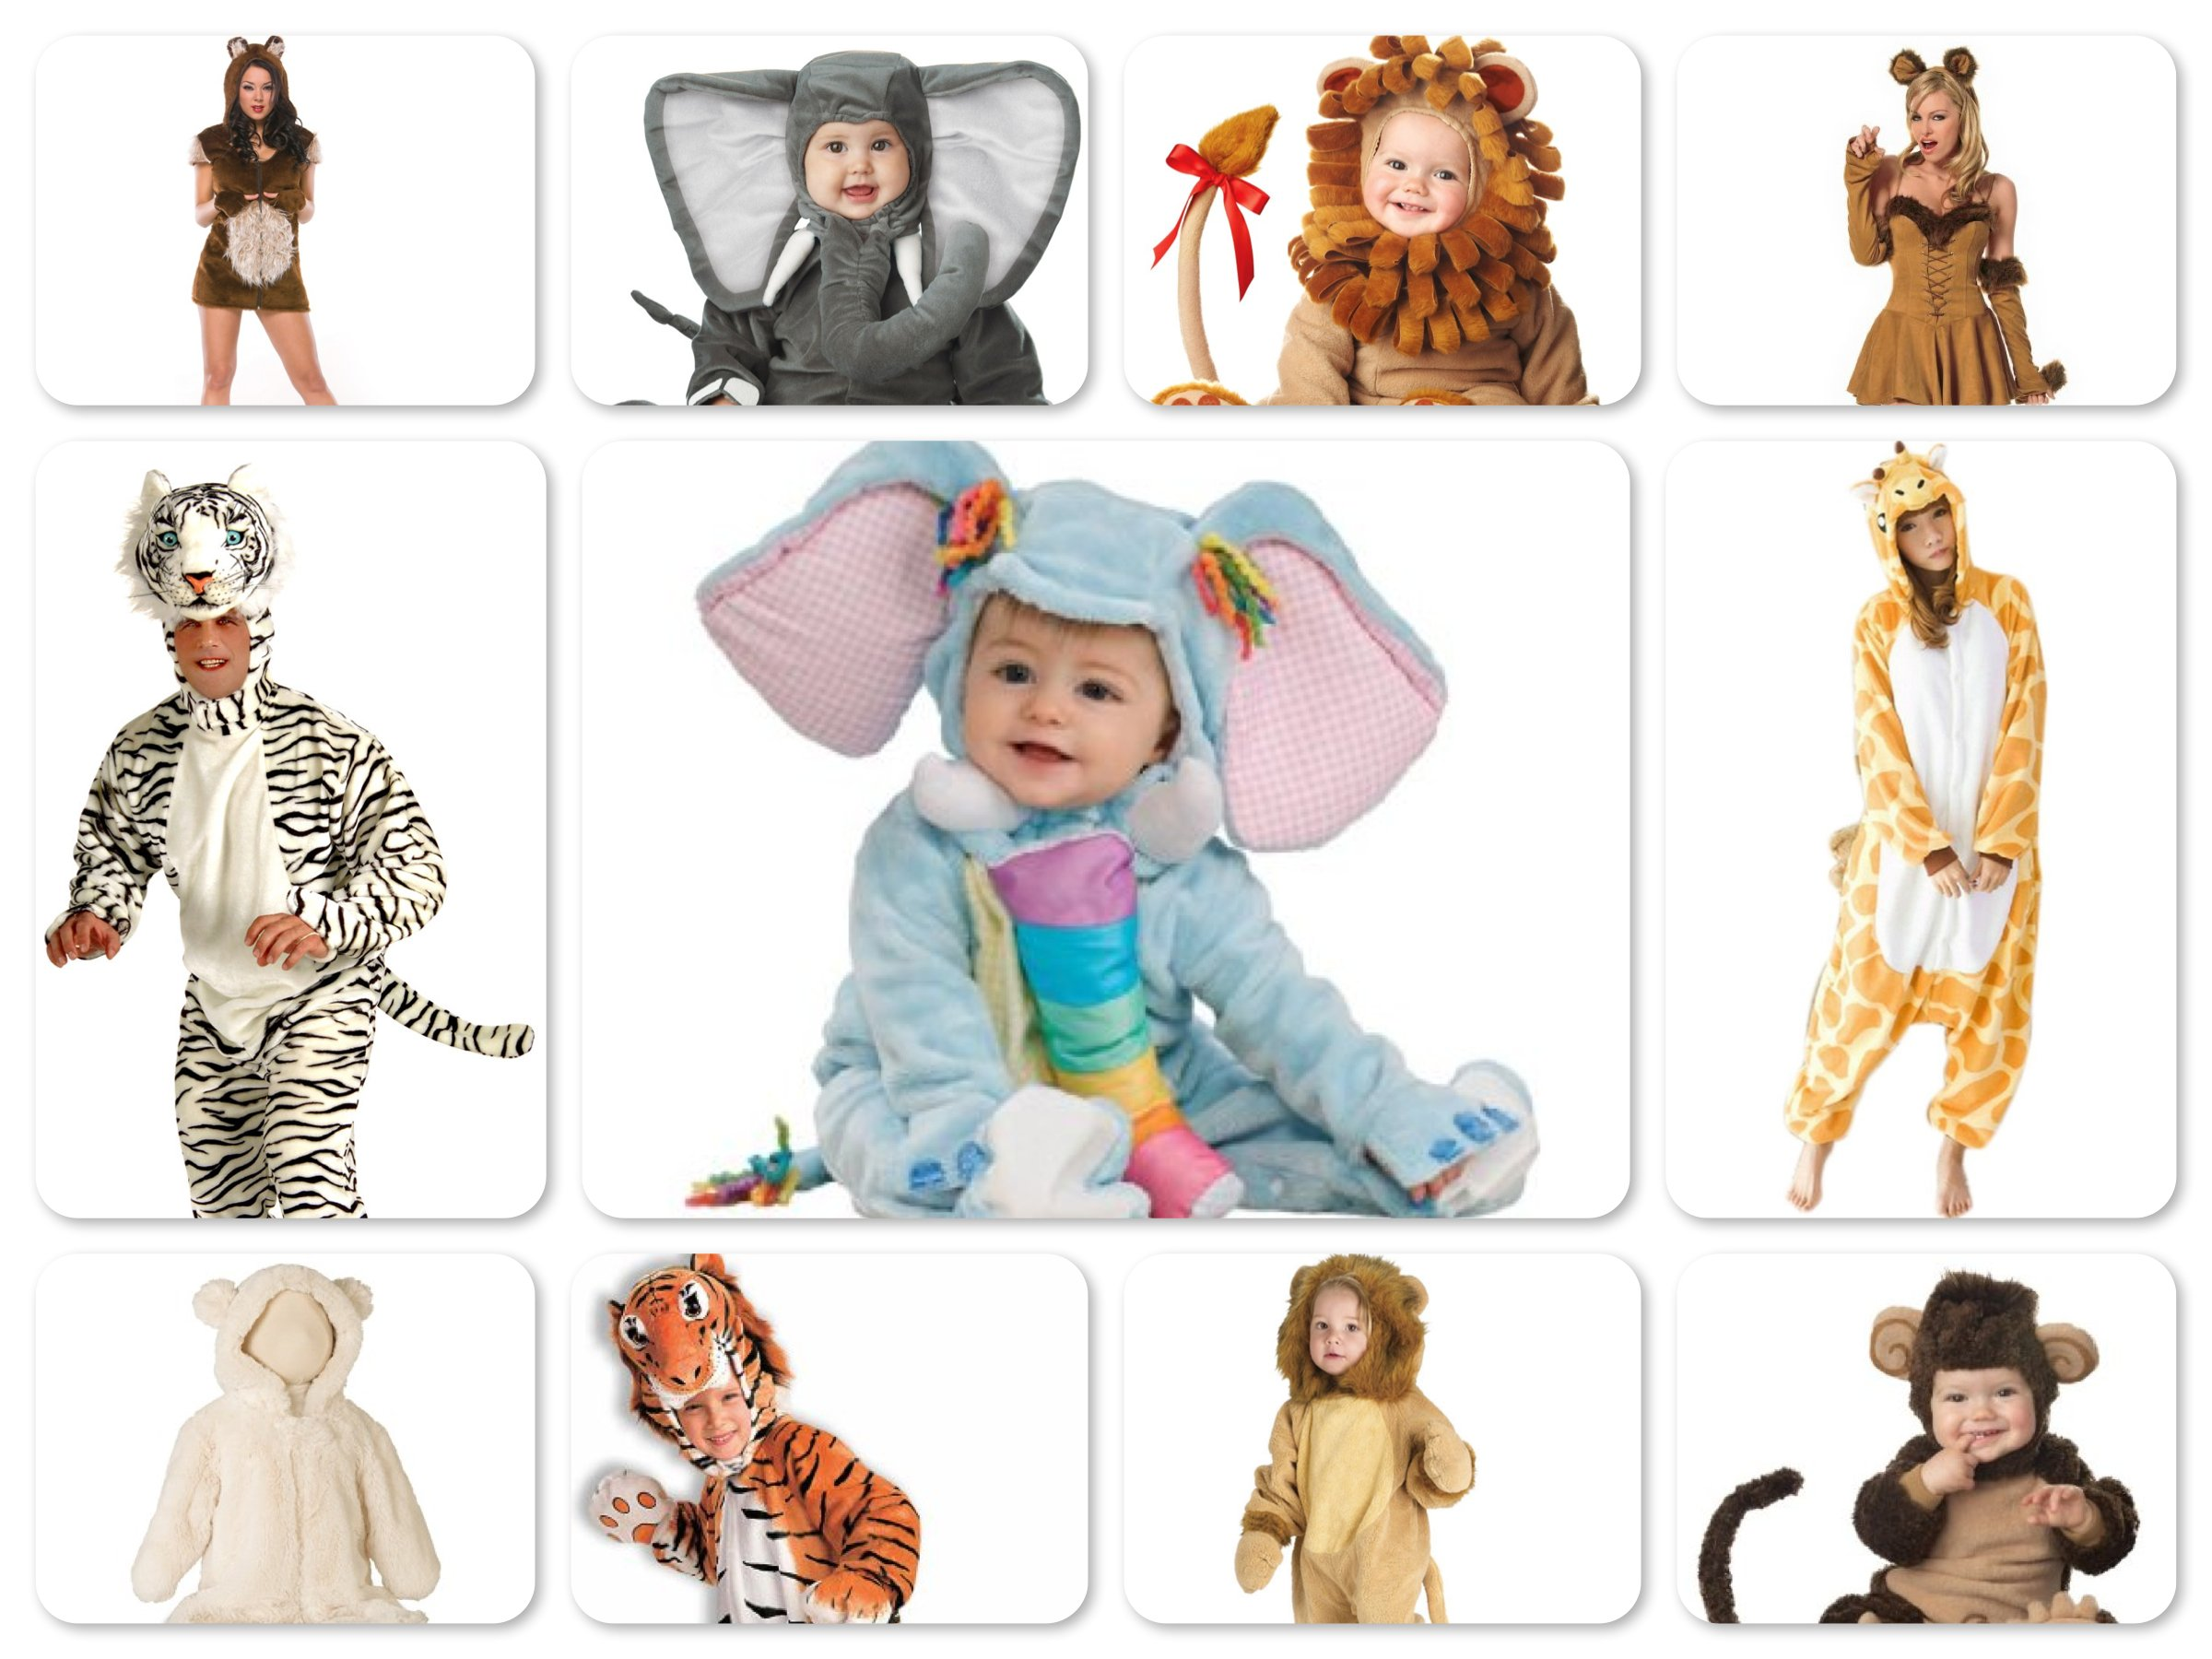 Lions and Tigers and Bears, Oh My! Costumes Matching Family Costumes